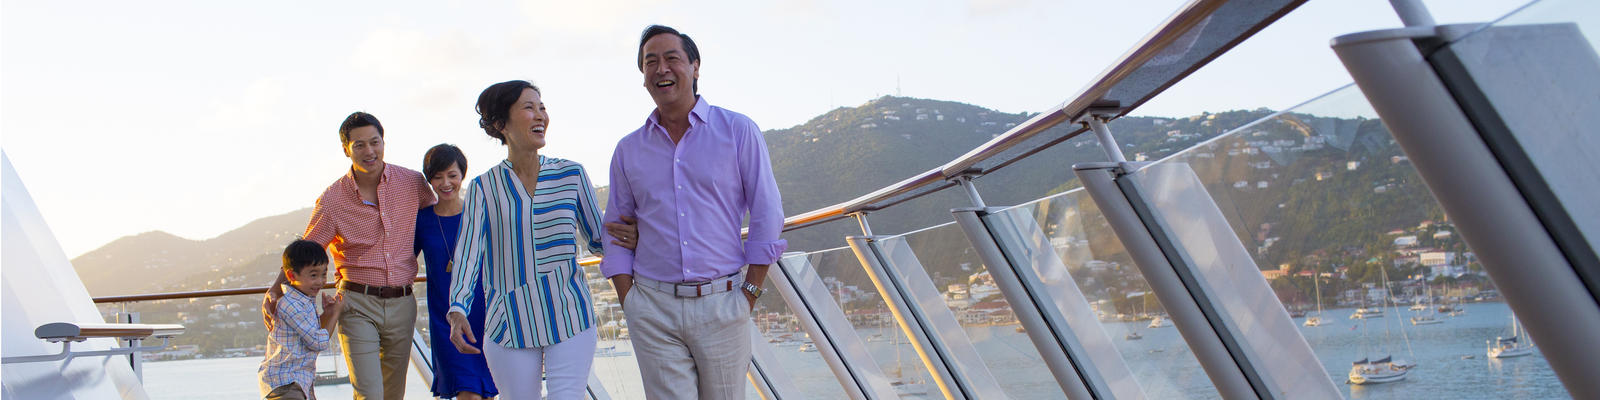 15 Ways To Take The Stress Out Of Embarkation Day Cruise Critic